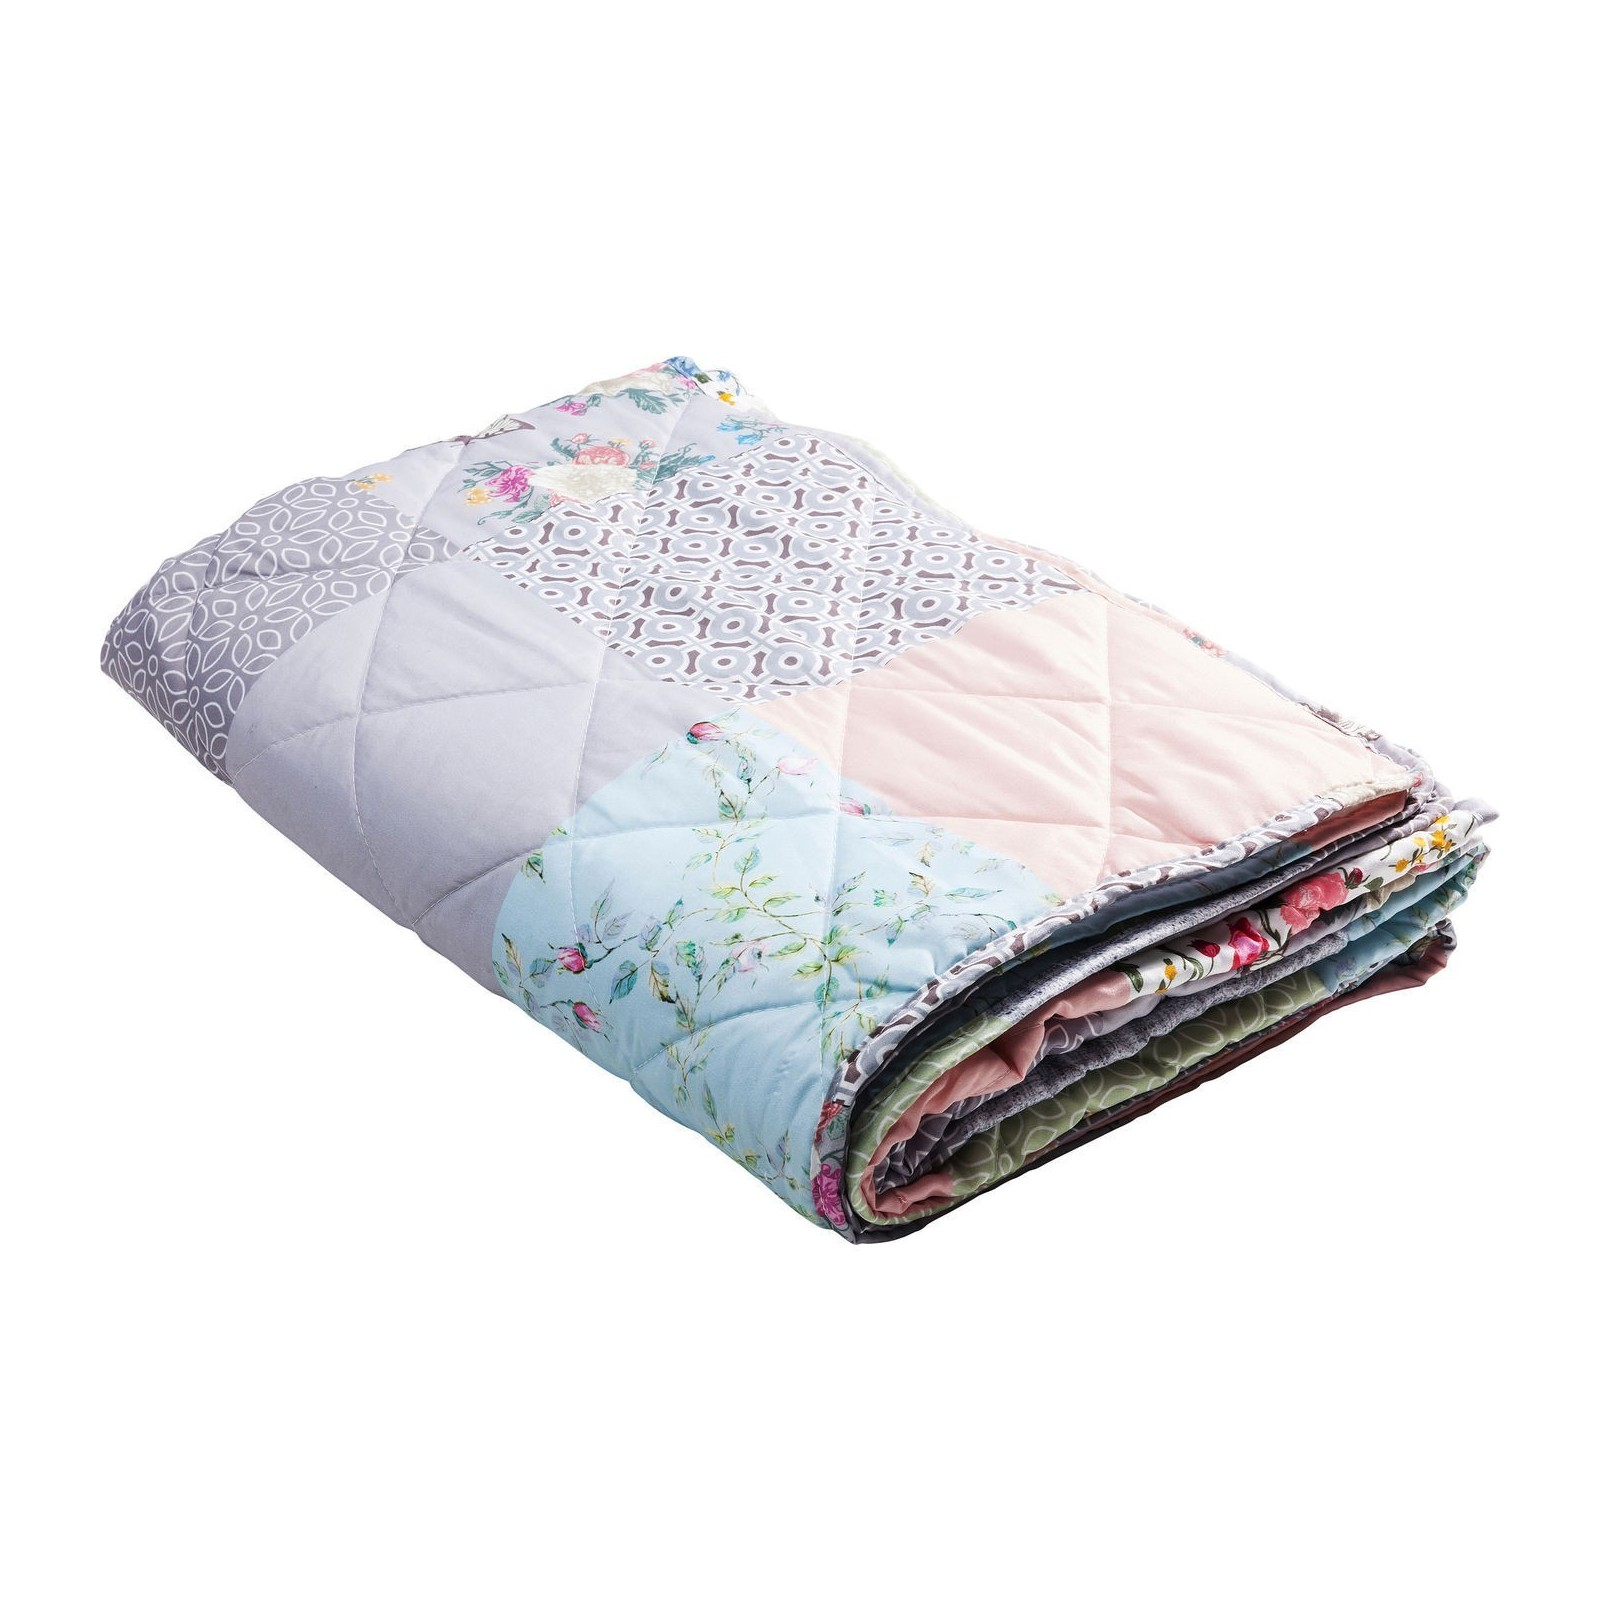 Coussin plaid en patchwork designs